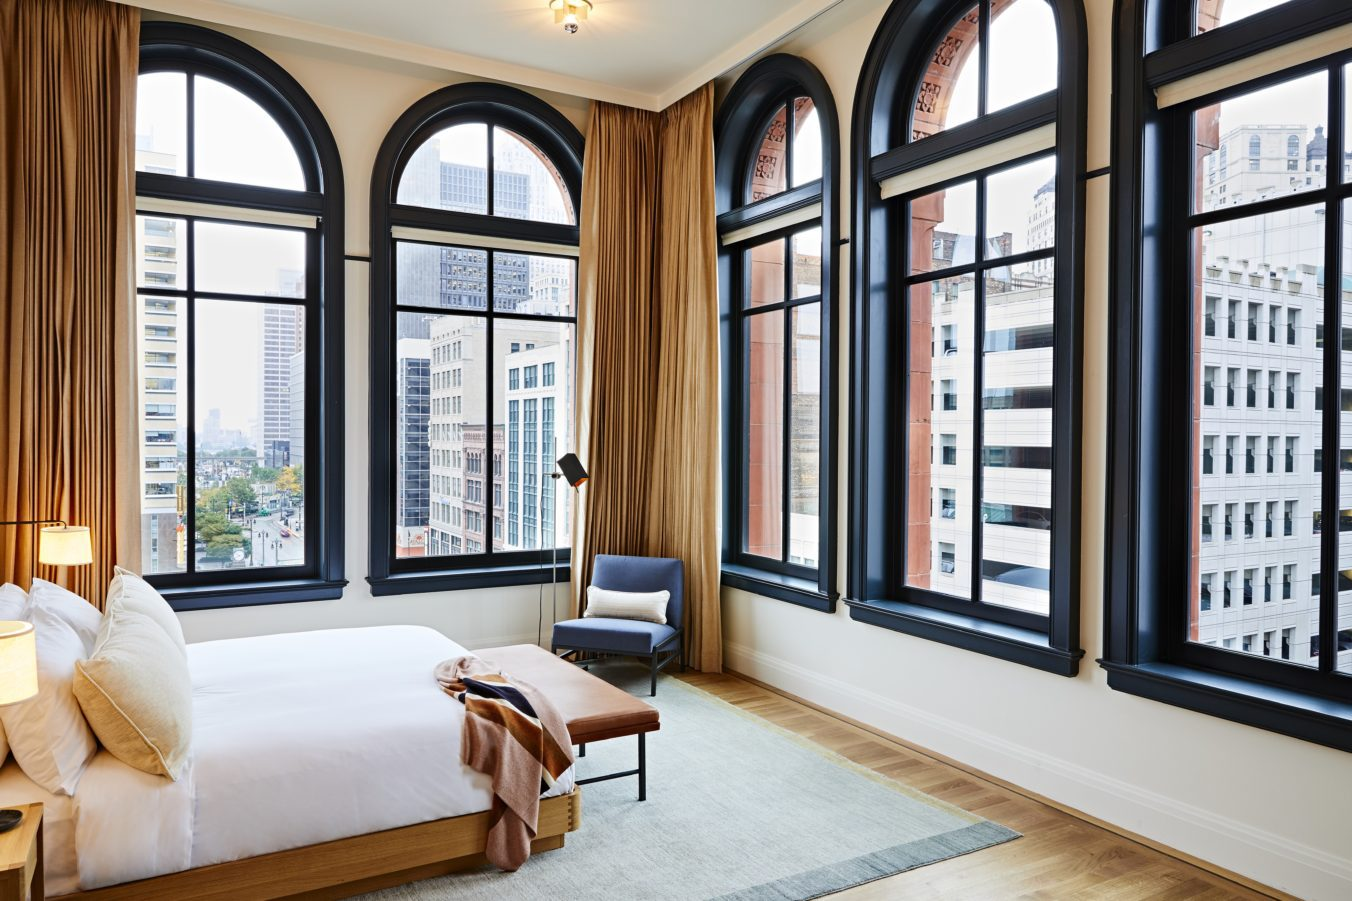 Shinola Hotel bed surrounded by five large windows